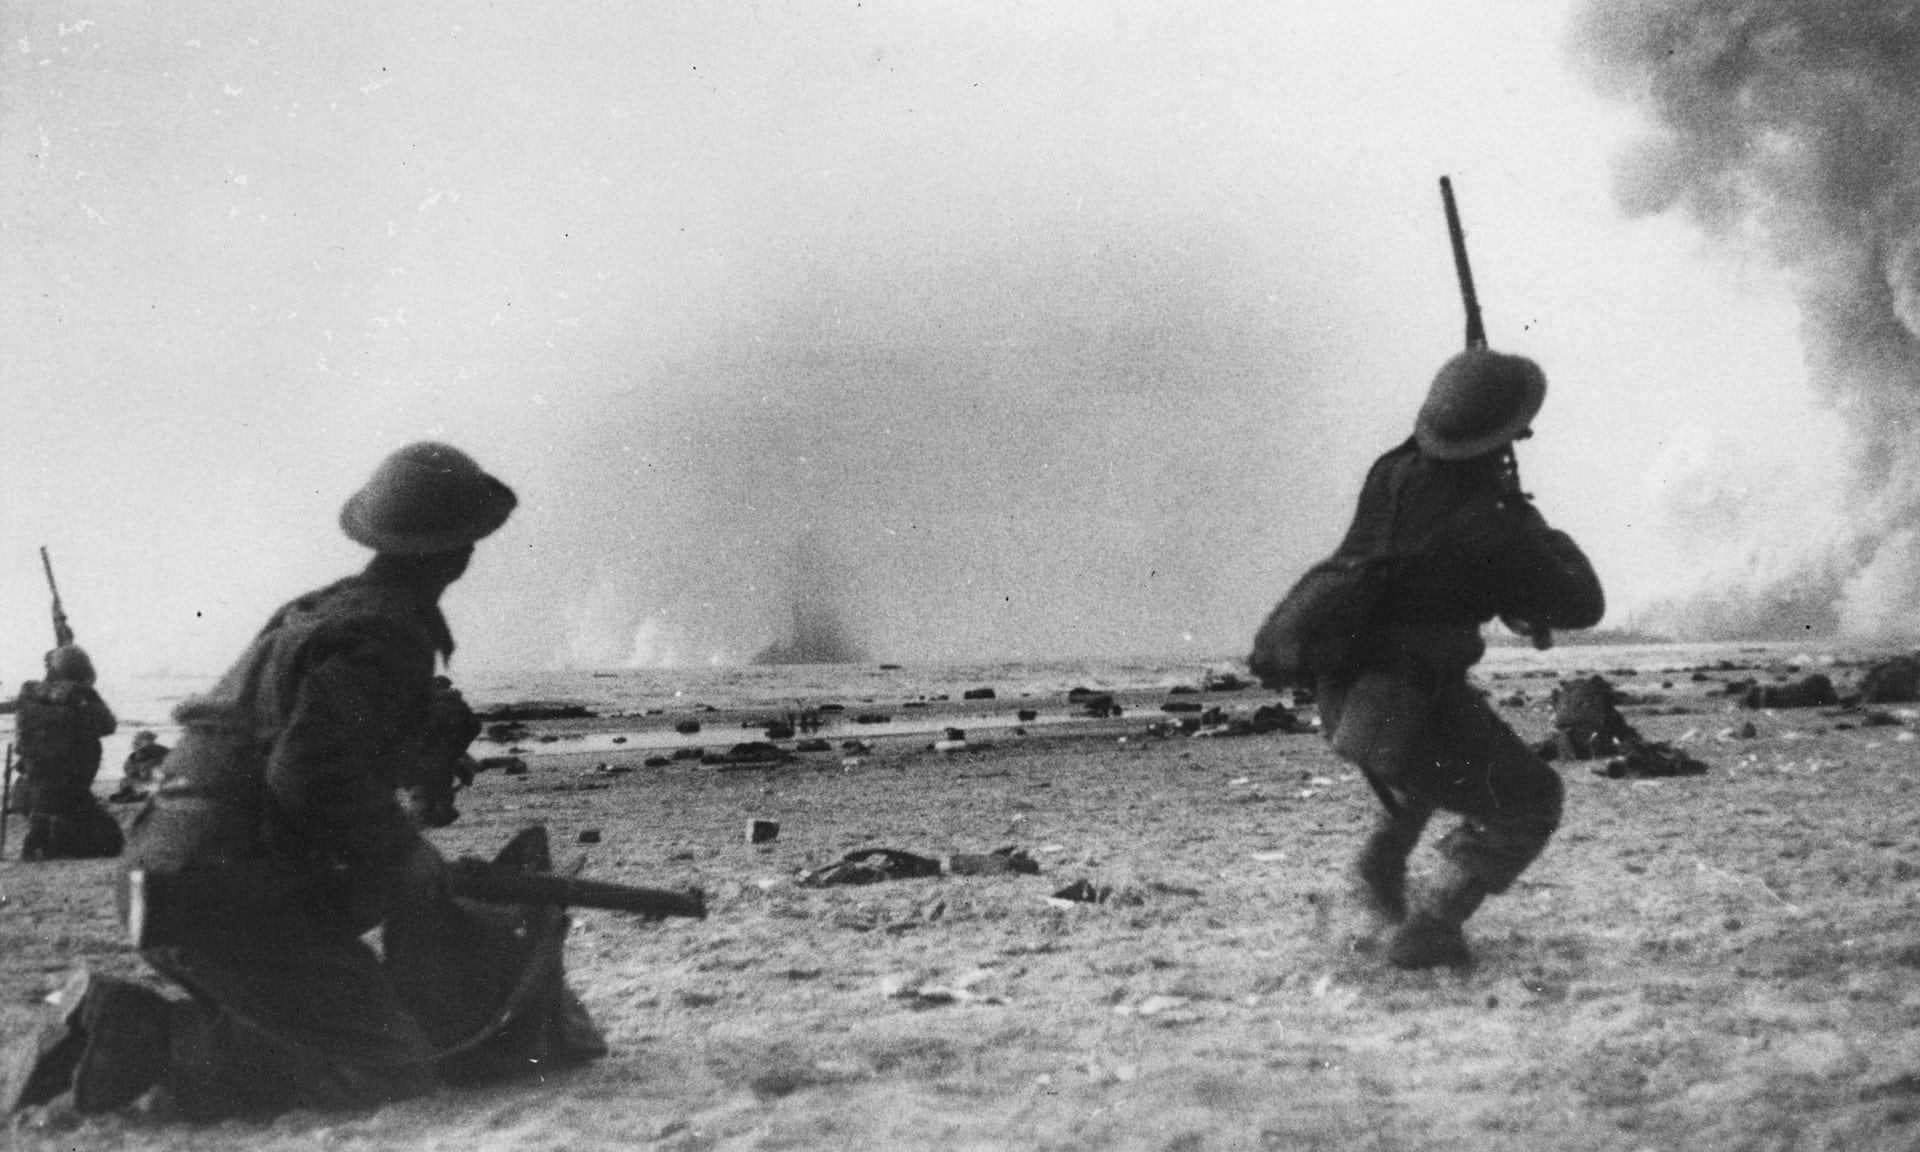 battle of dunkirk - wikipedia